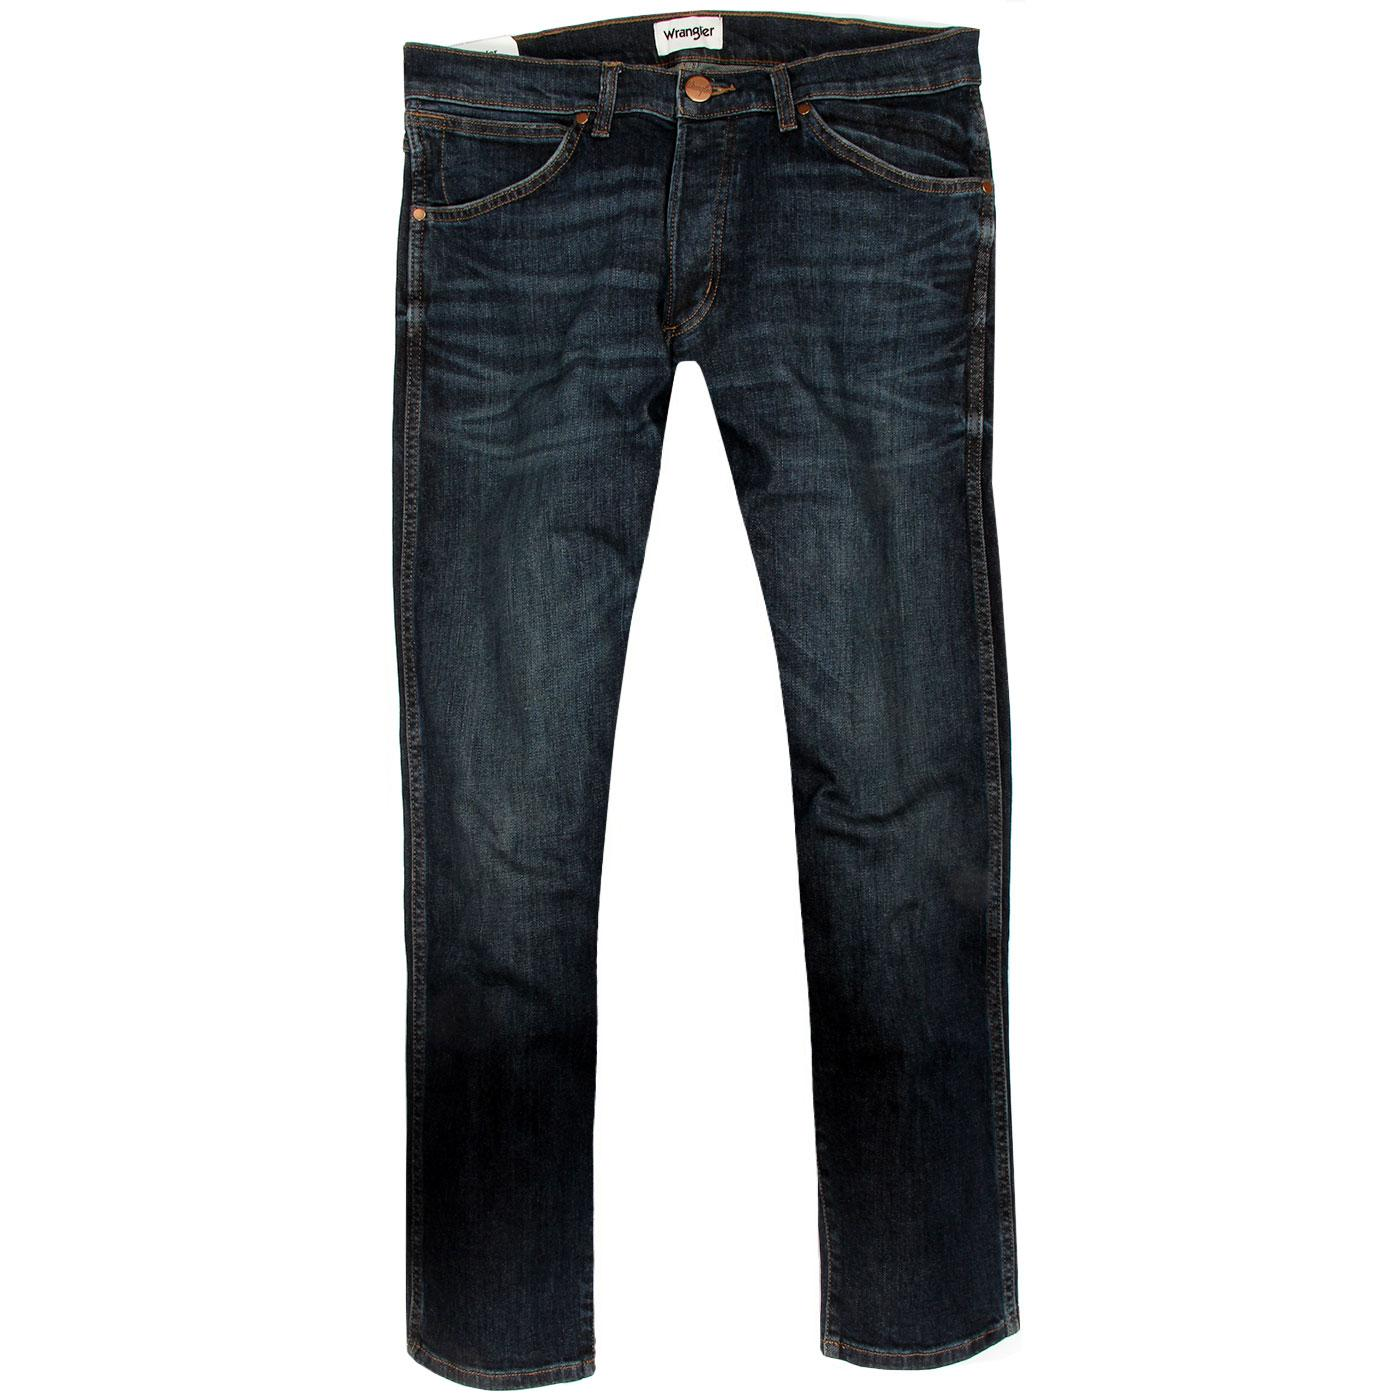 Slider WRANGLER Regular Tapered Jeans - Green Echo